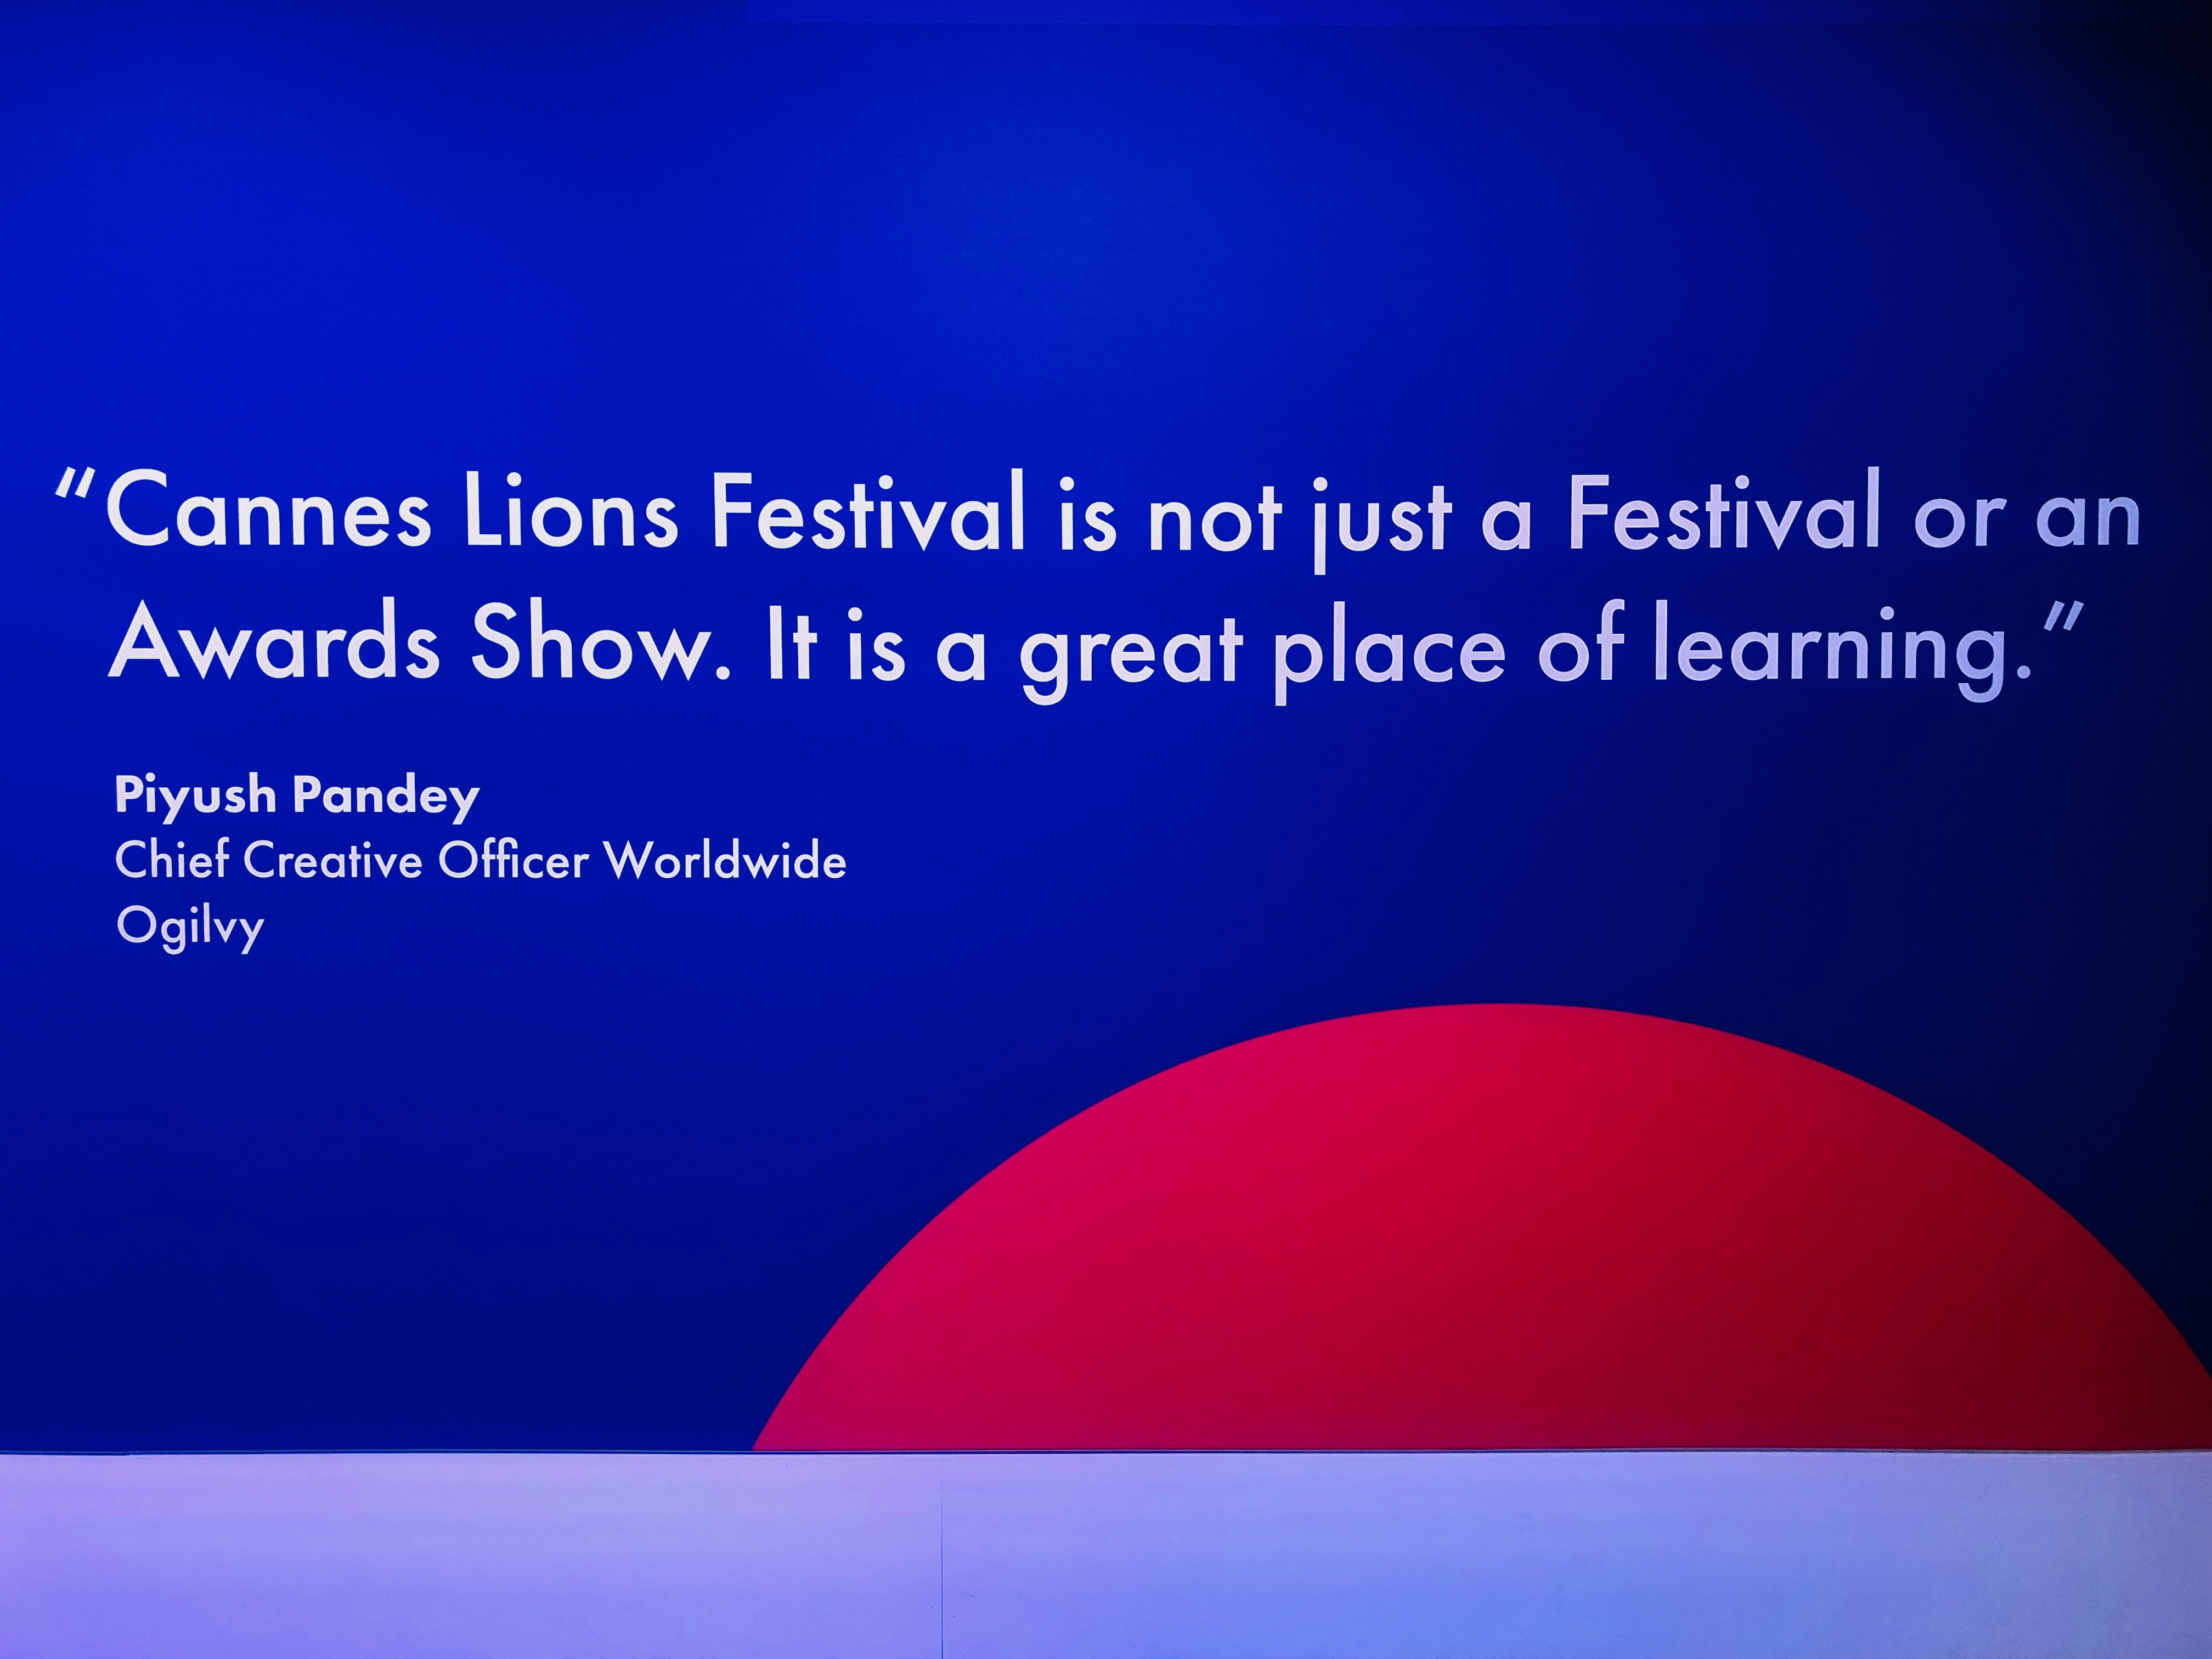 Ogilvy at Cannes Lions 2019